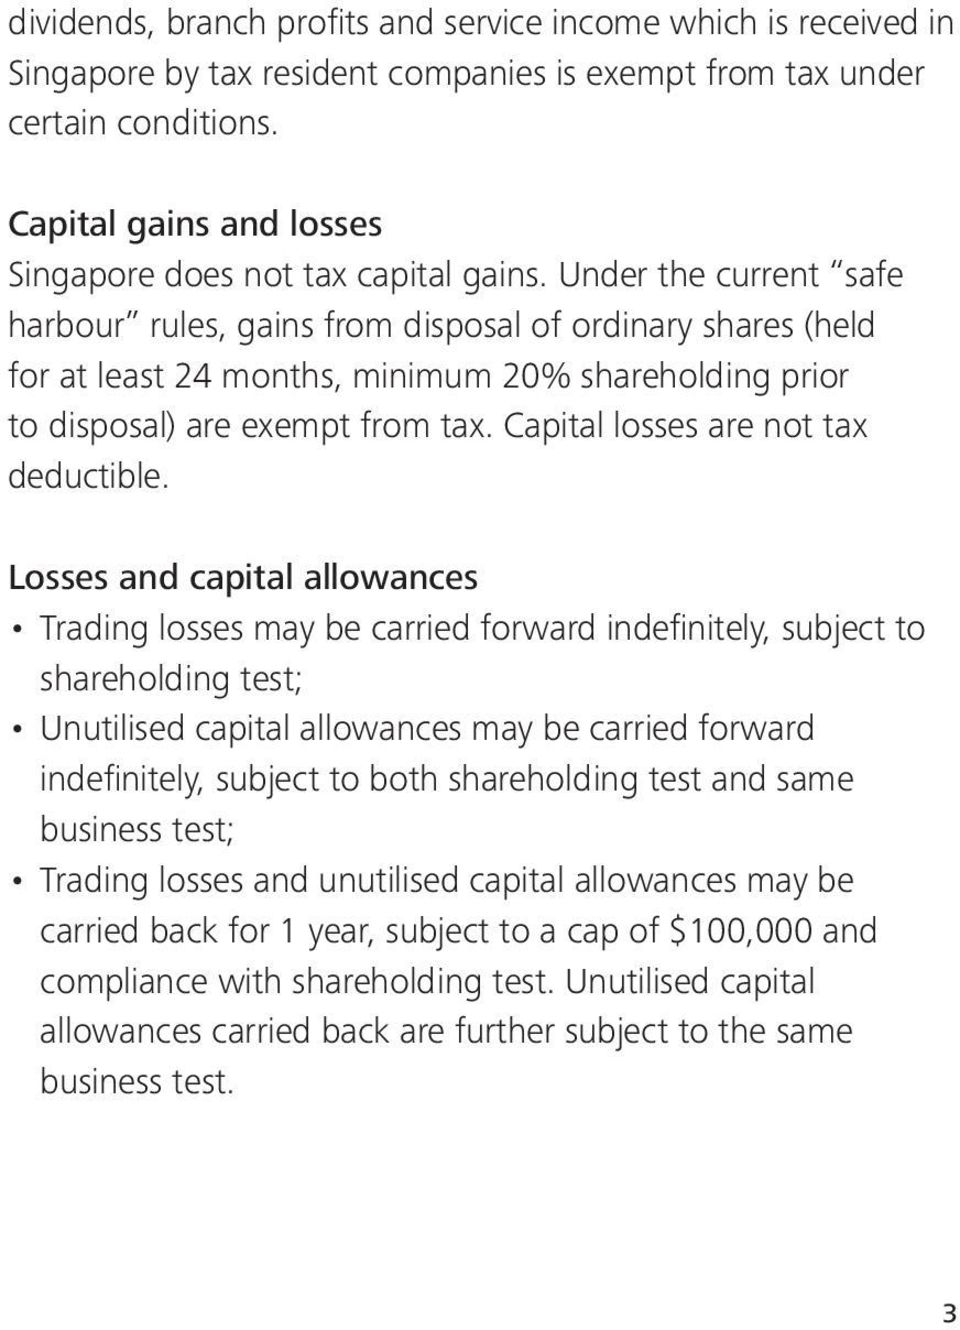 Under the current safe harbour rules, gains from disposal of ordinary shares (held for at least 24 months, minimum 20% shareholding prior to disposal) are exempt from tax.